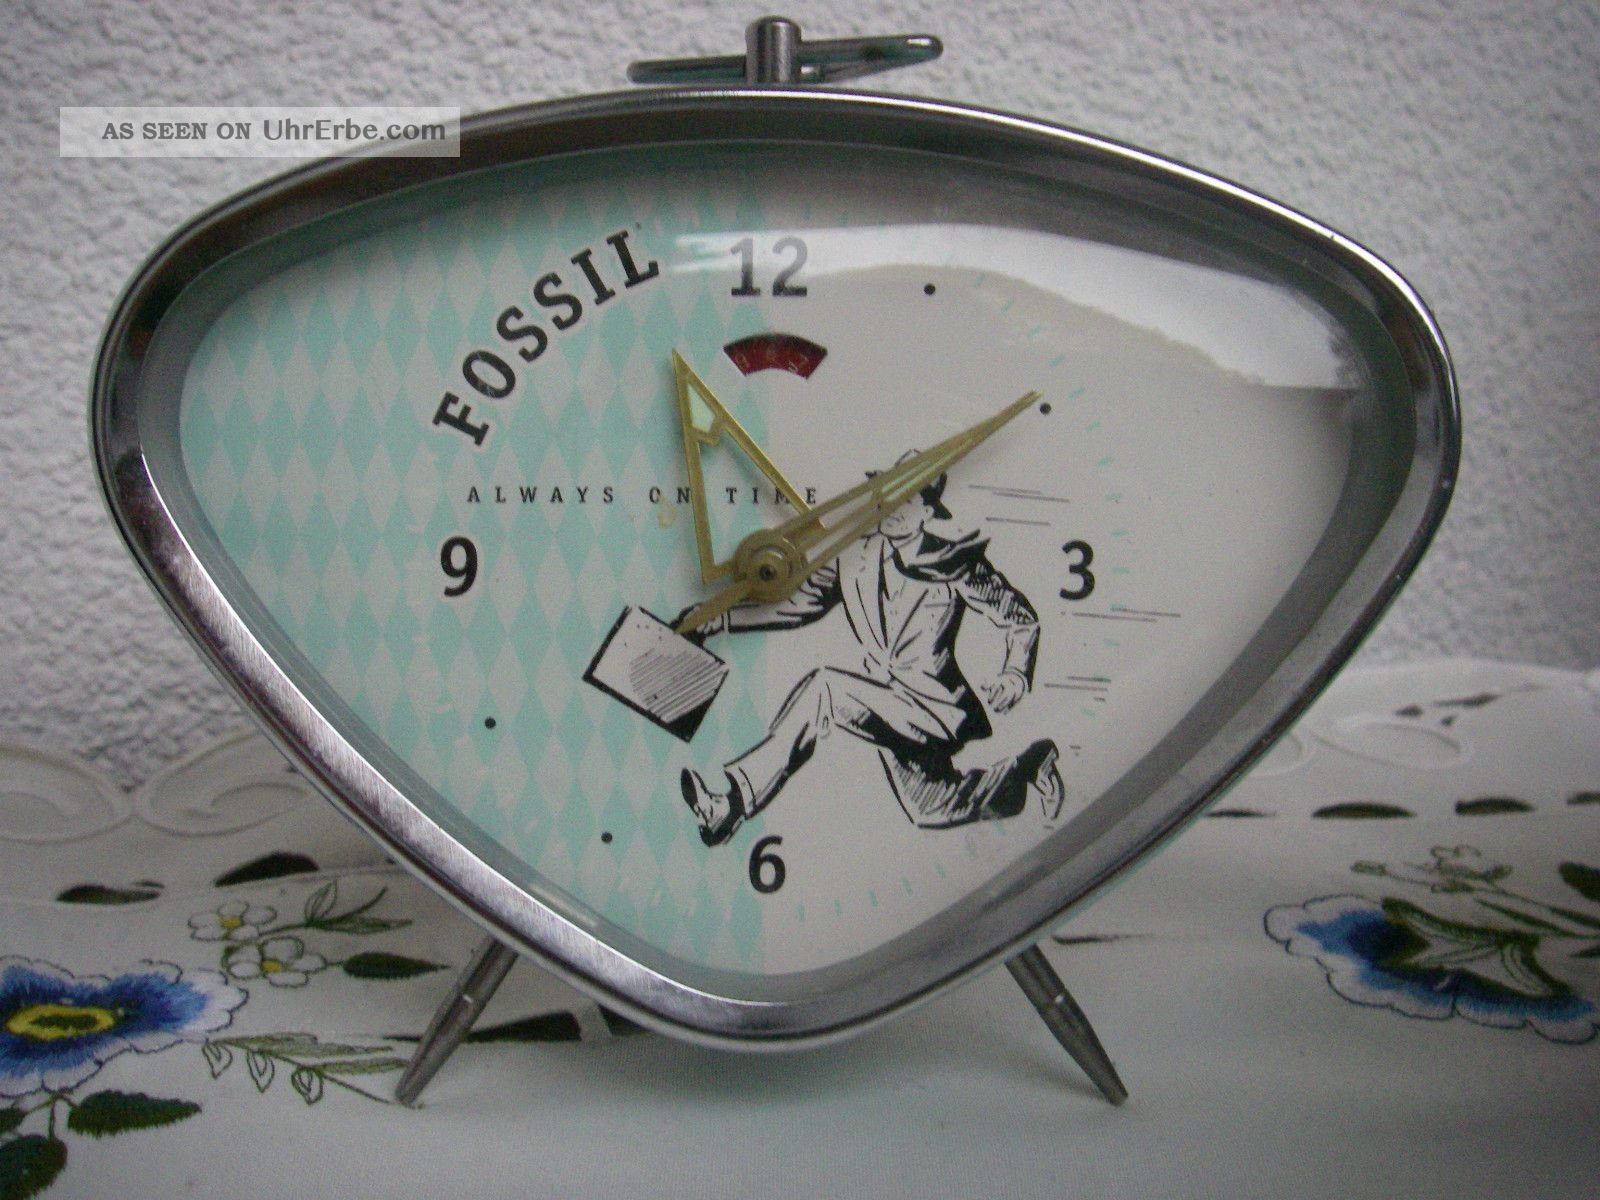 Wecker retro style authentic fossil alarm clock drei st ck - Retro stuhle gunstig ...